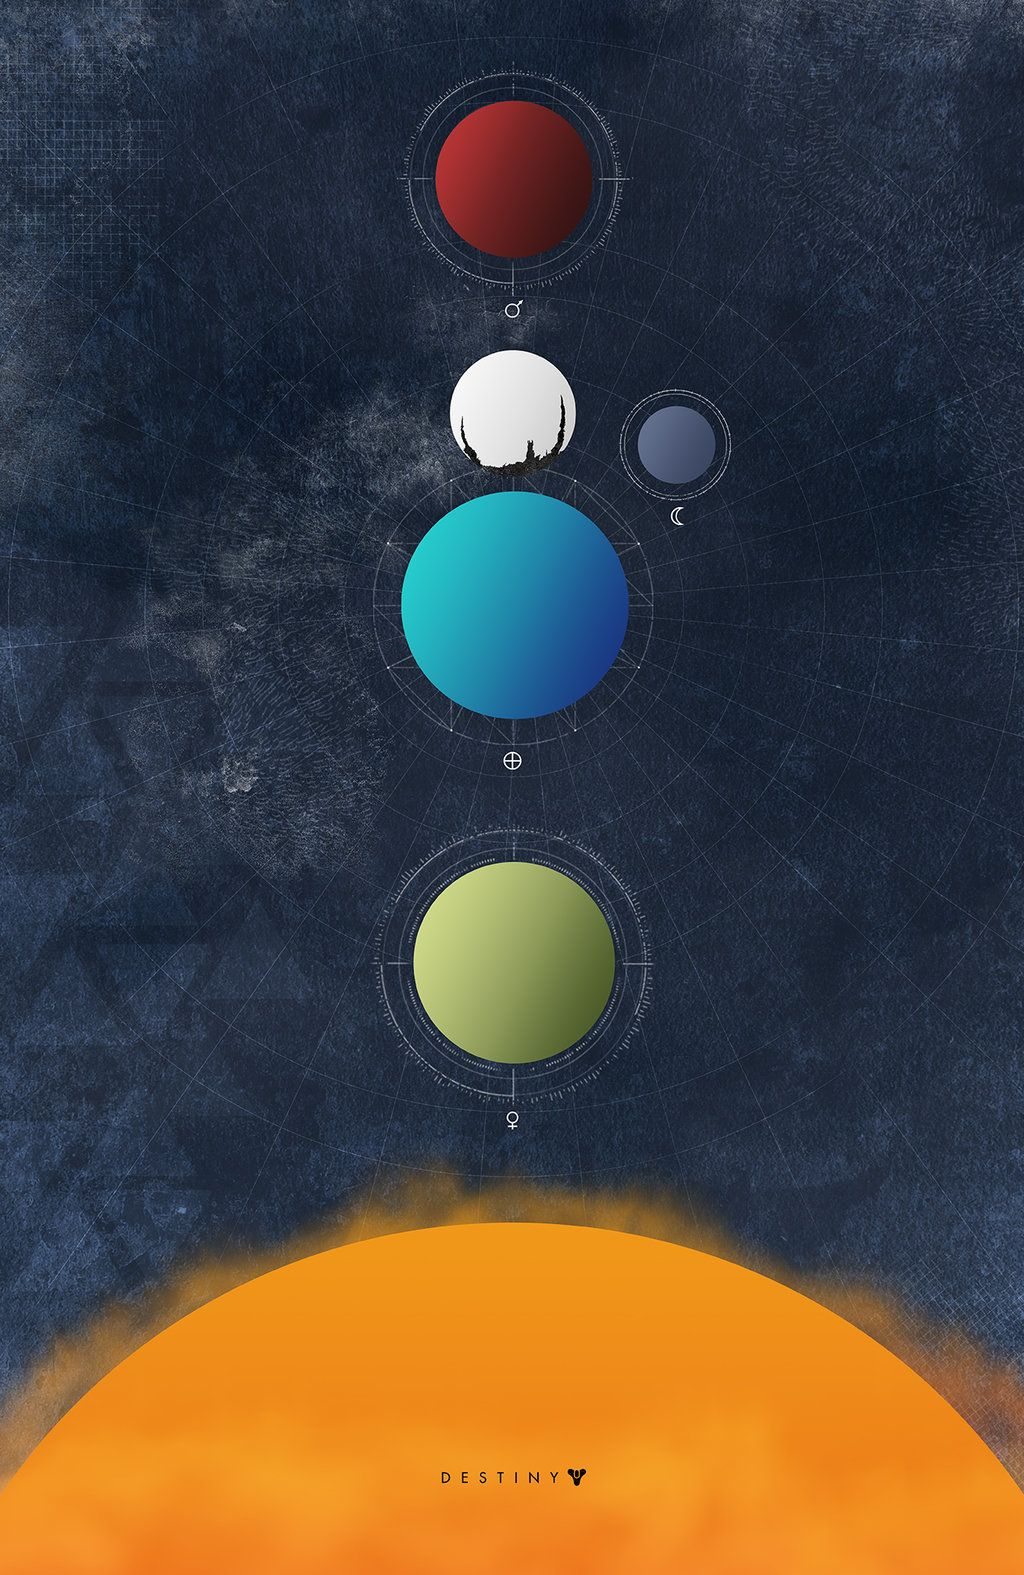 Destiny Minimalist Poster Destiny Backgrounds Minimalist Poster Destiny Game